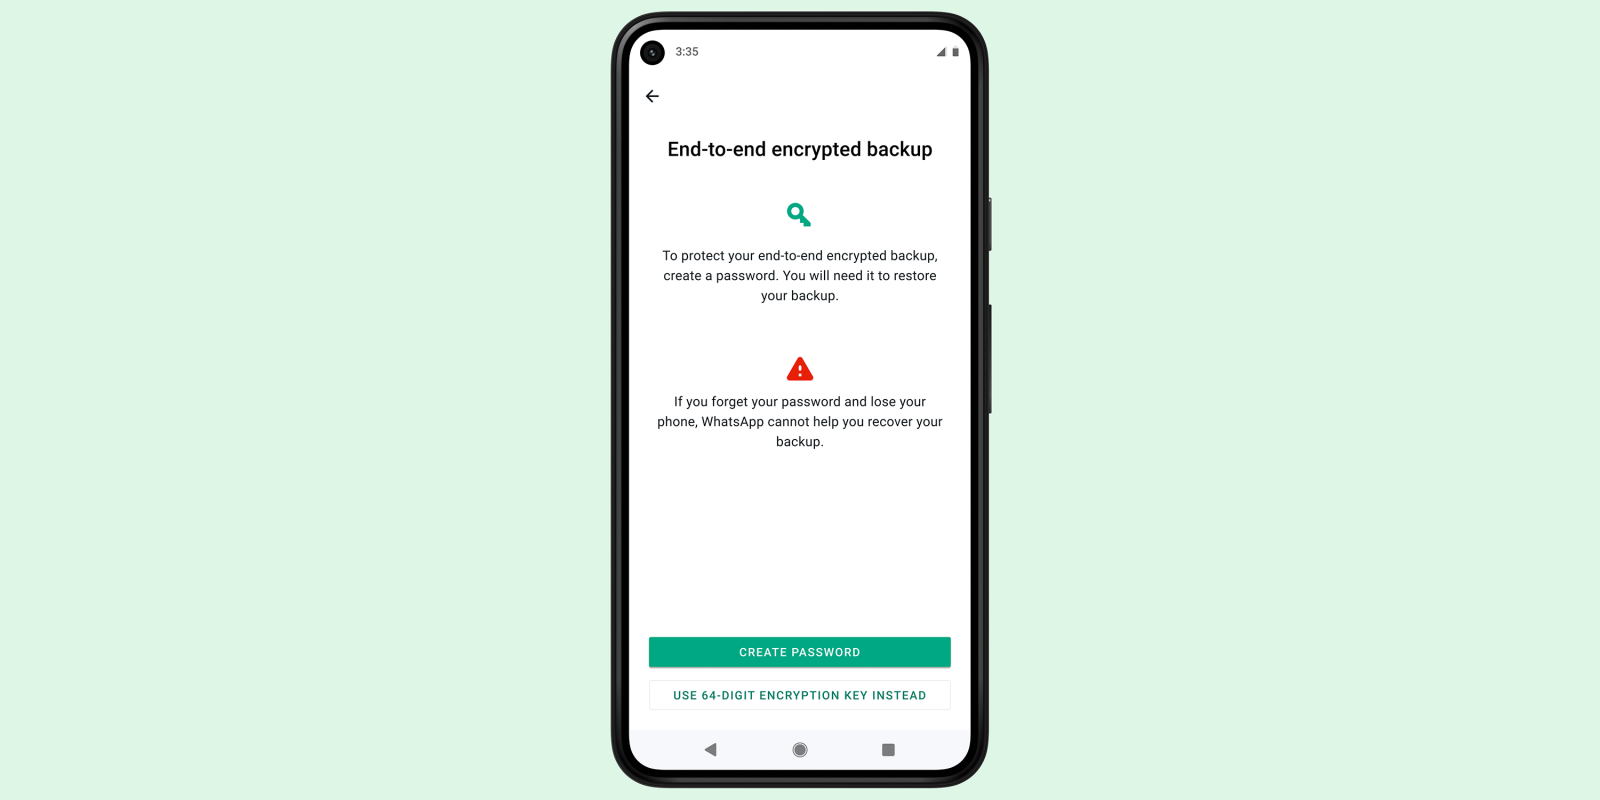 photo of WhatsApp end-to-end encrypted backups rolling out; may put pressure on Apple image